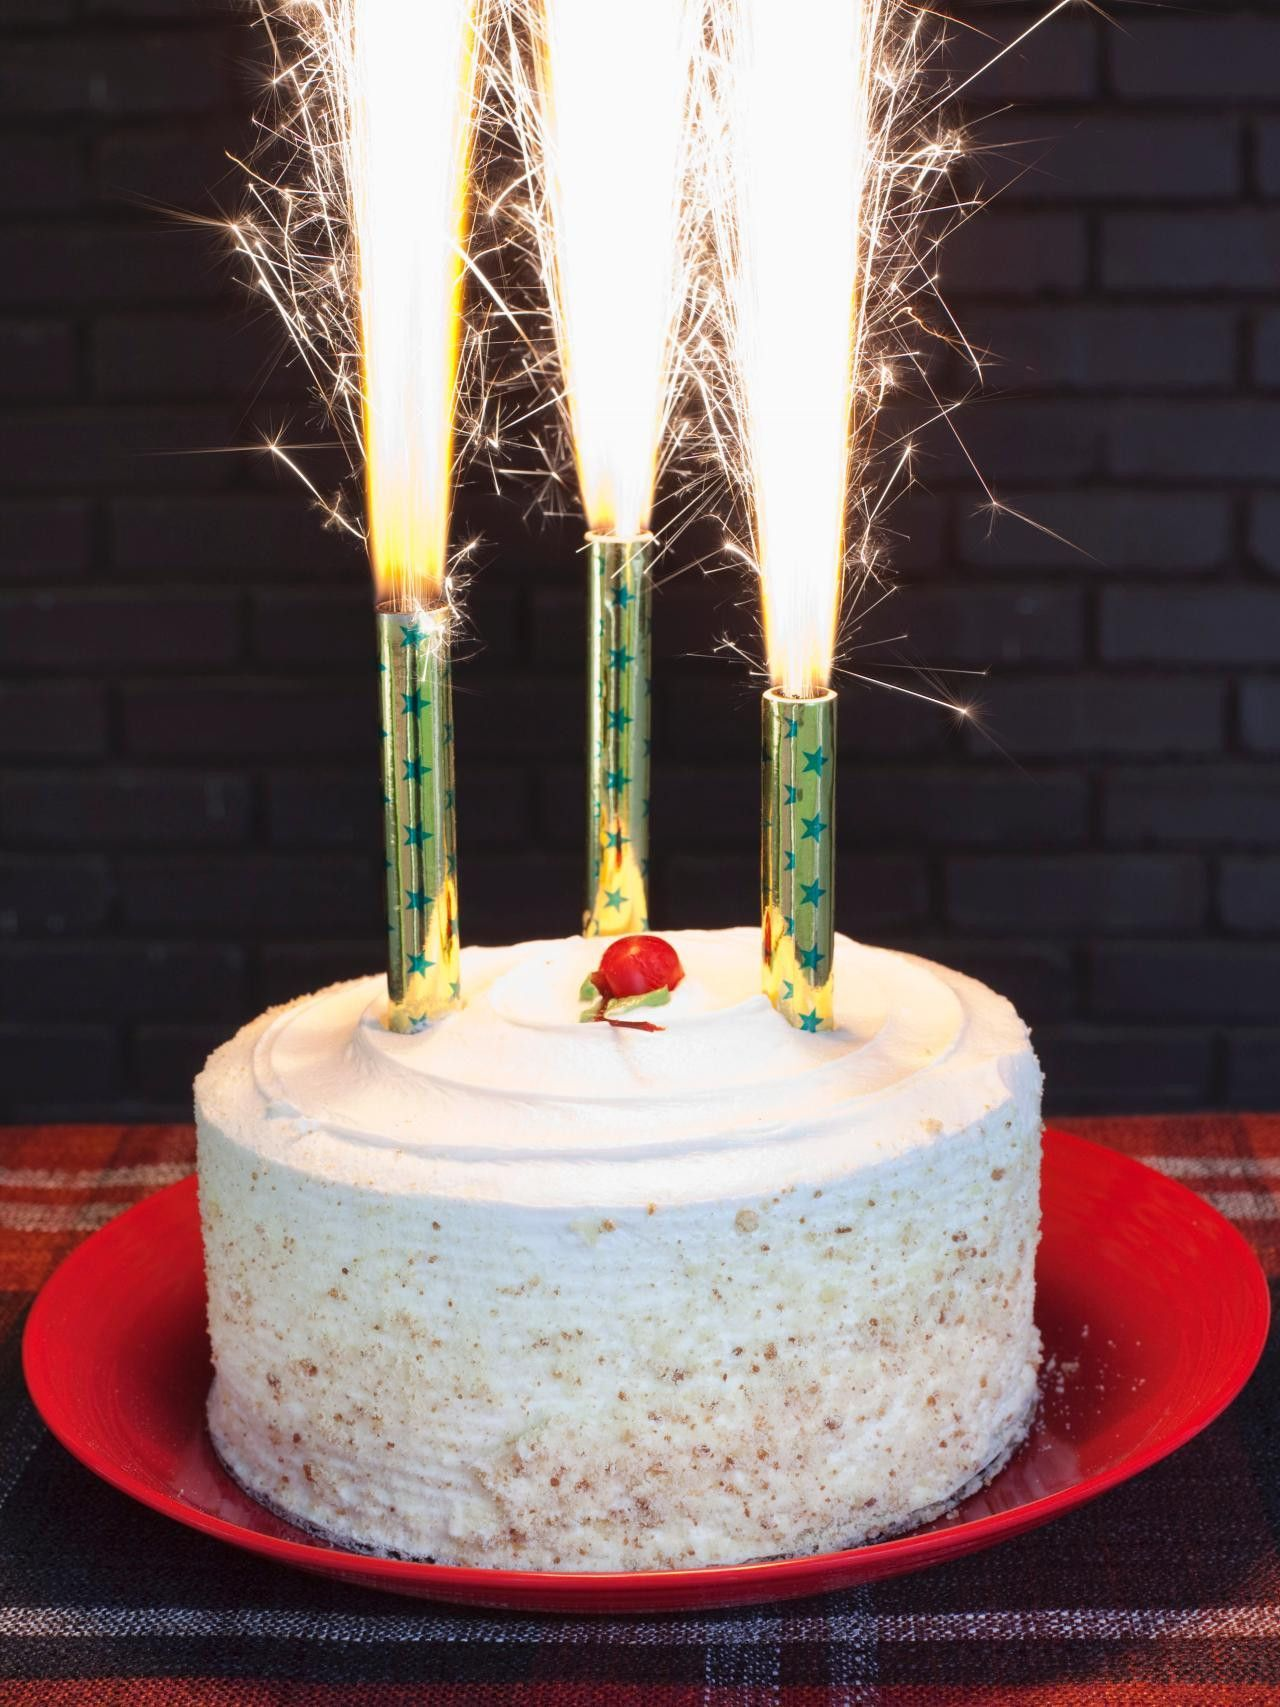 Cake Sparklers In 2018 Products Pinterest Cake Sparklers Wax